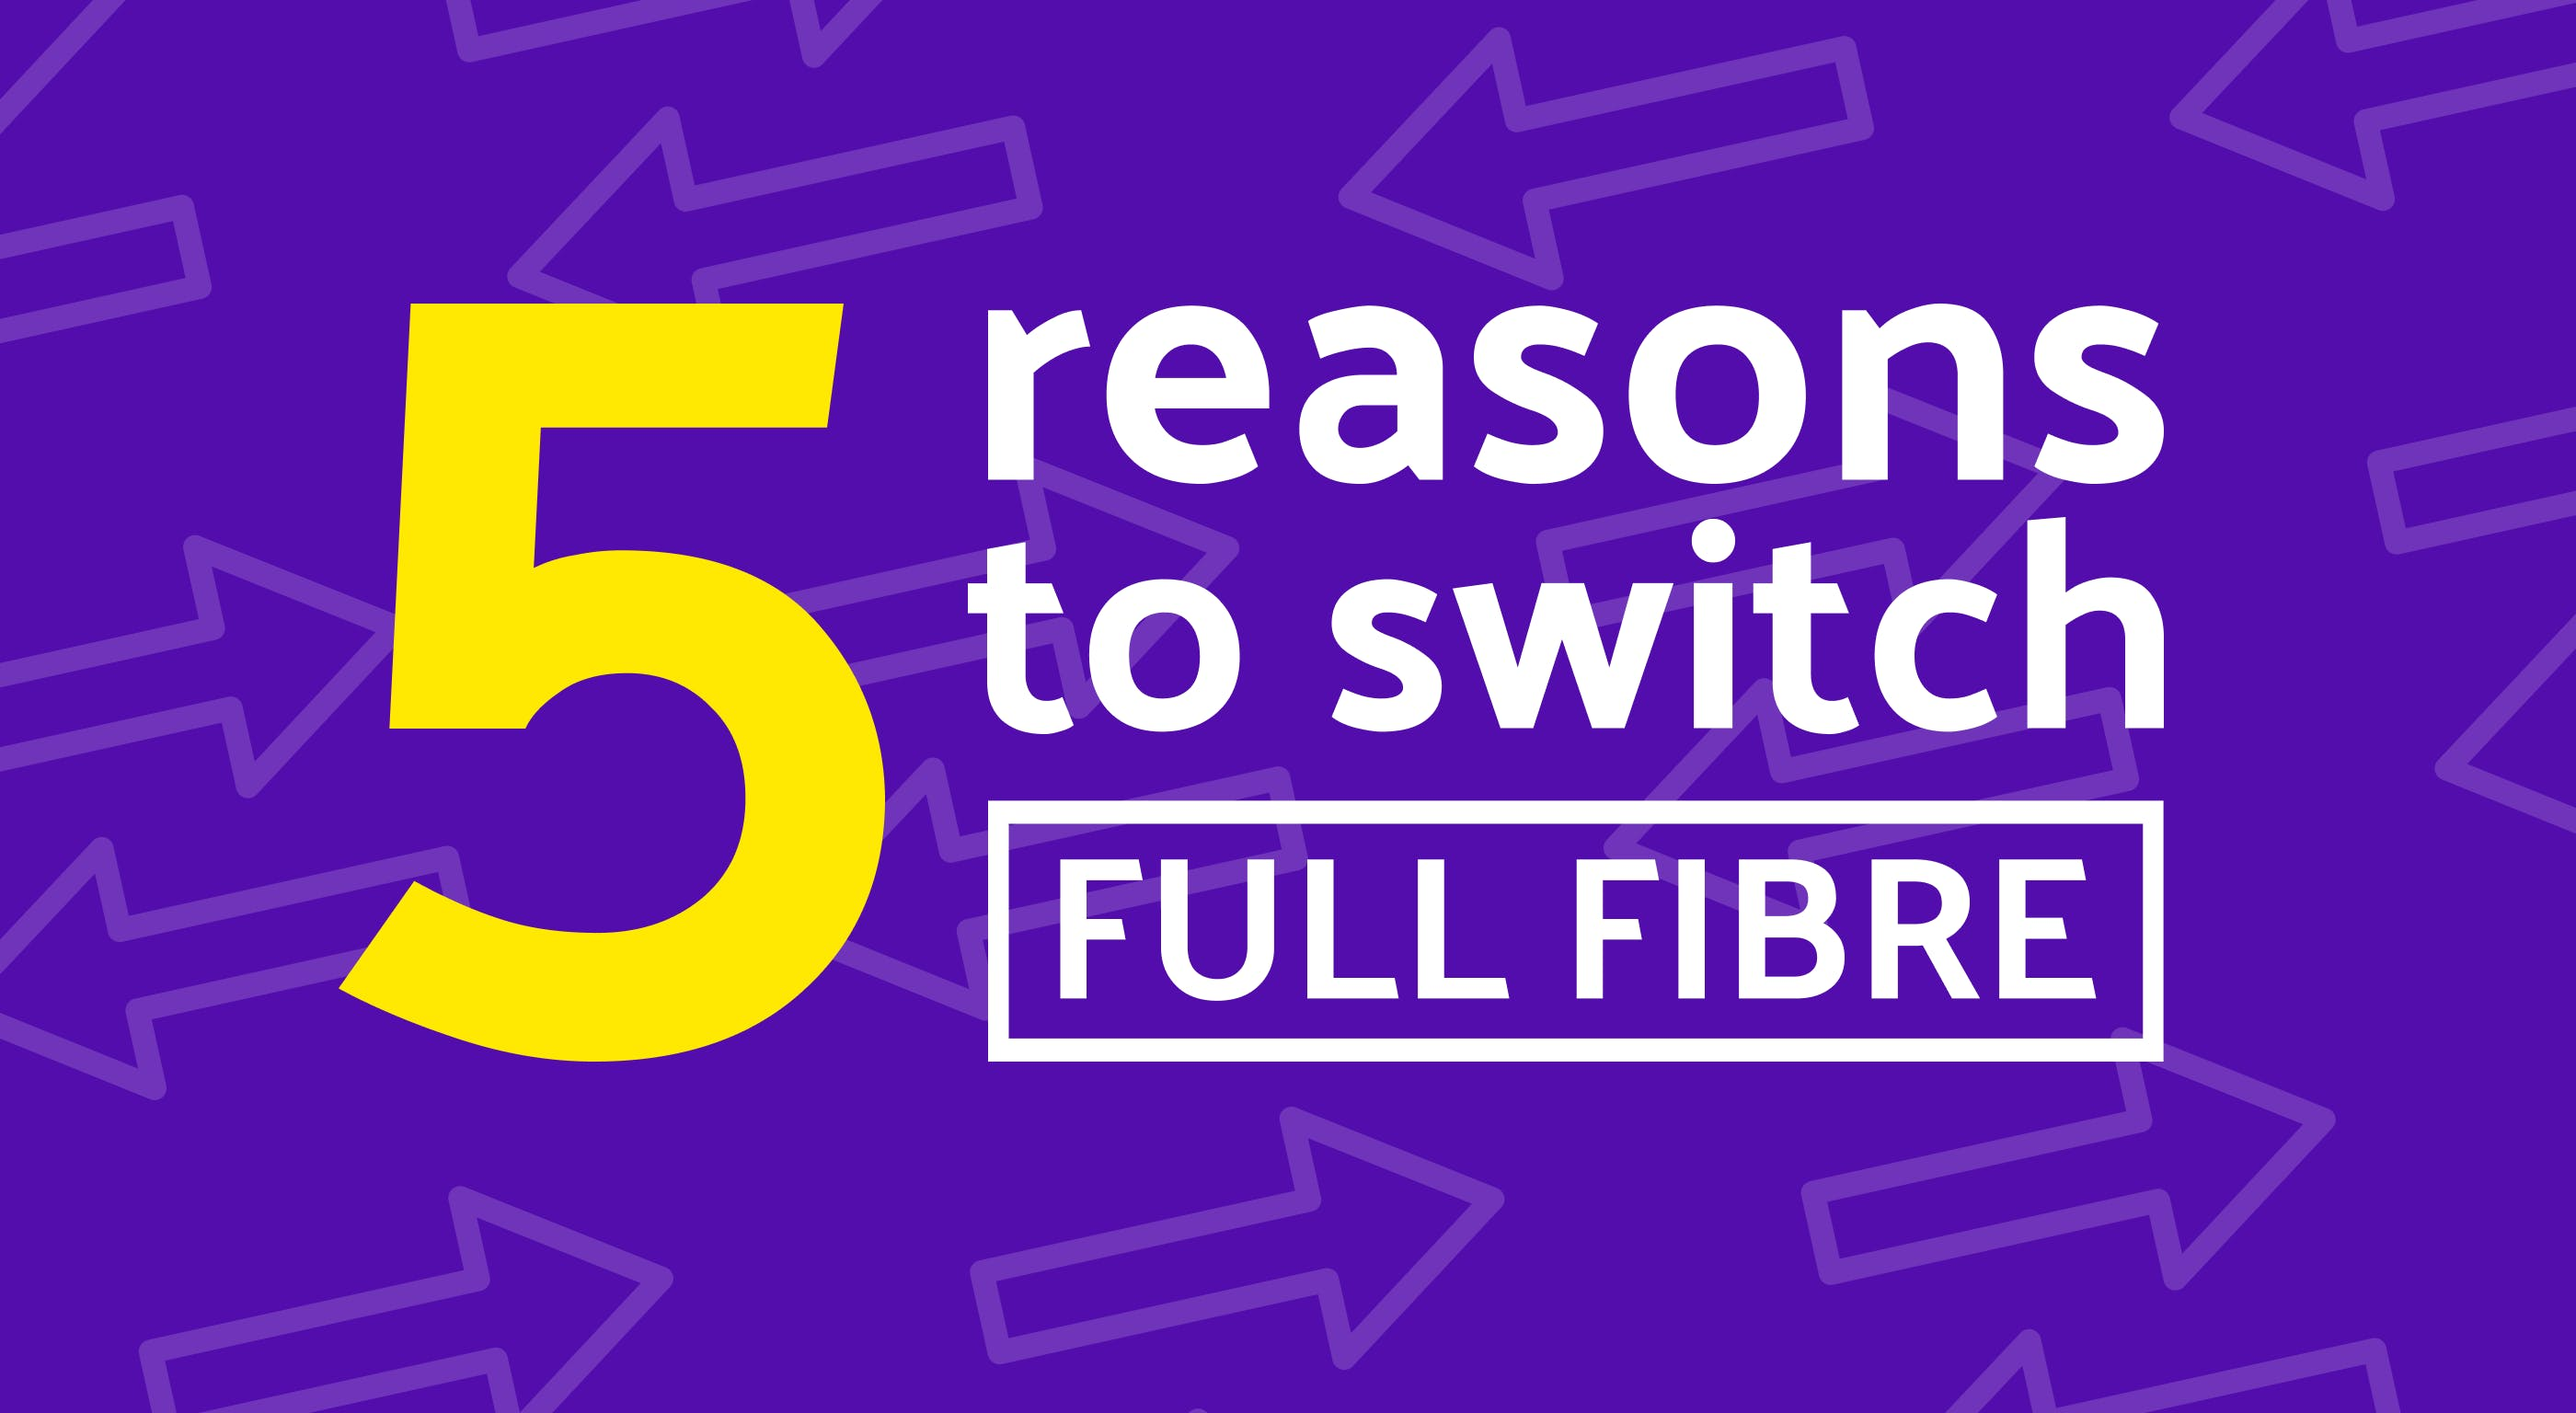 5 reasons to switch